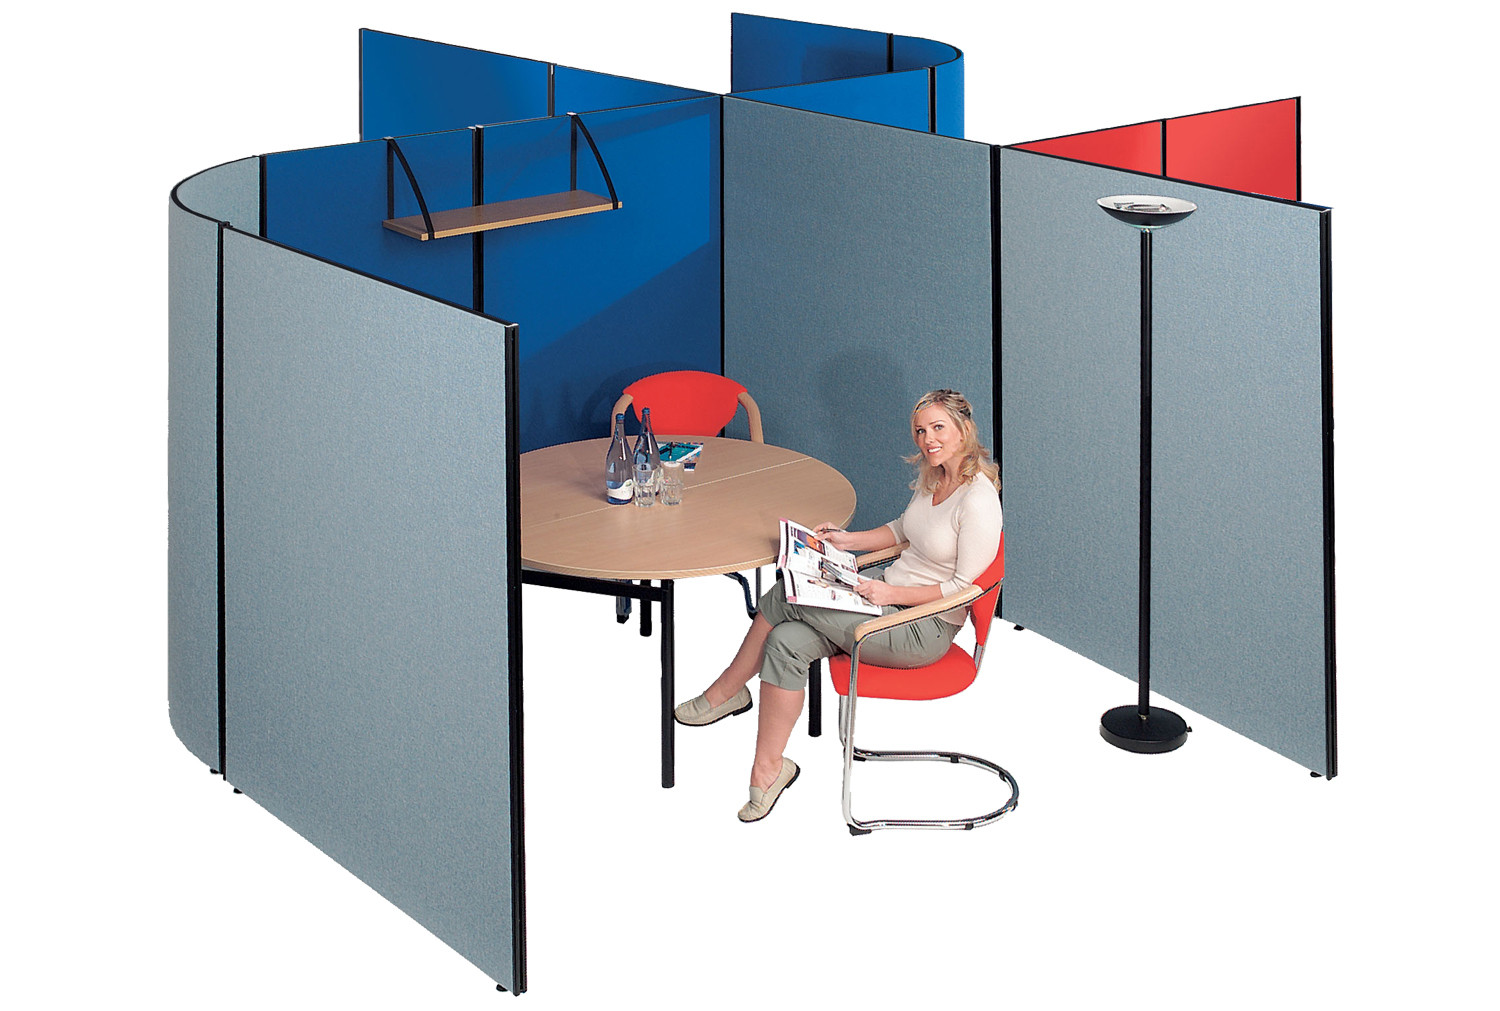 Busyscreen multi functional screen system